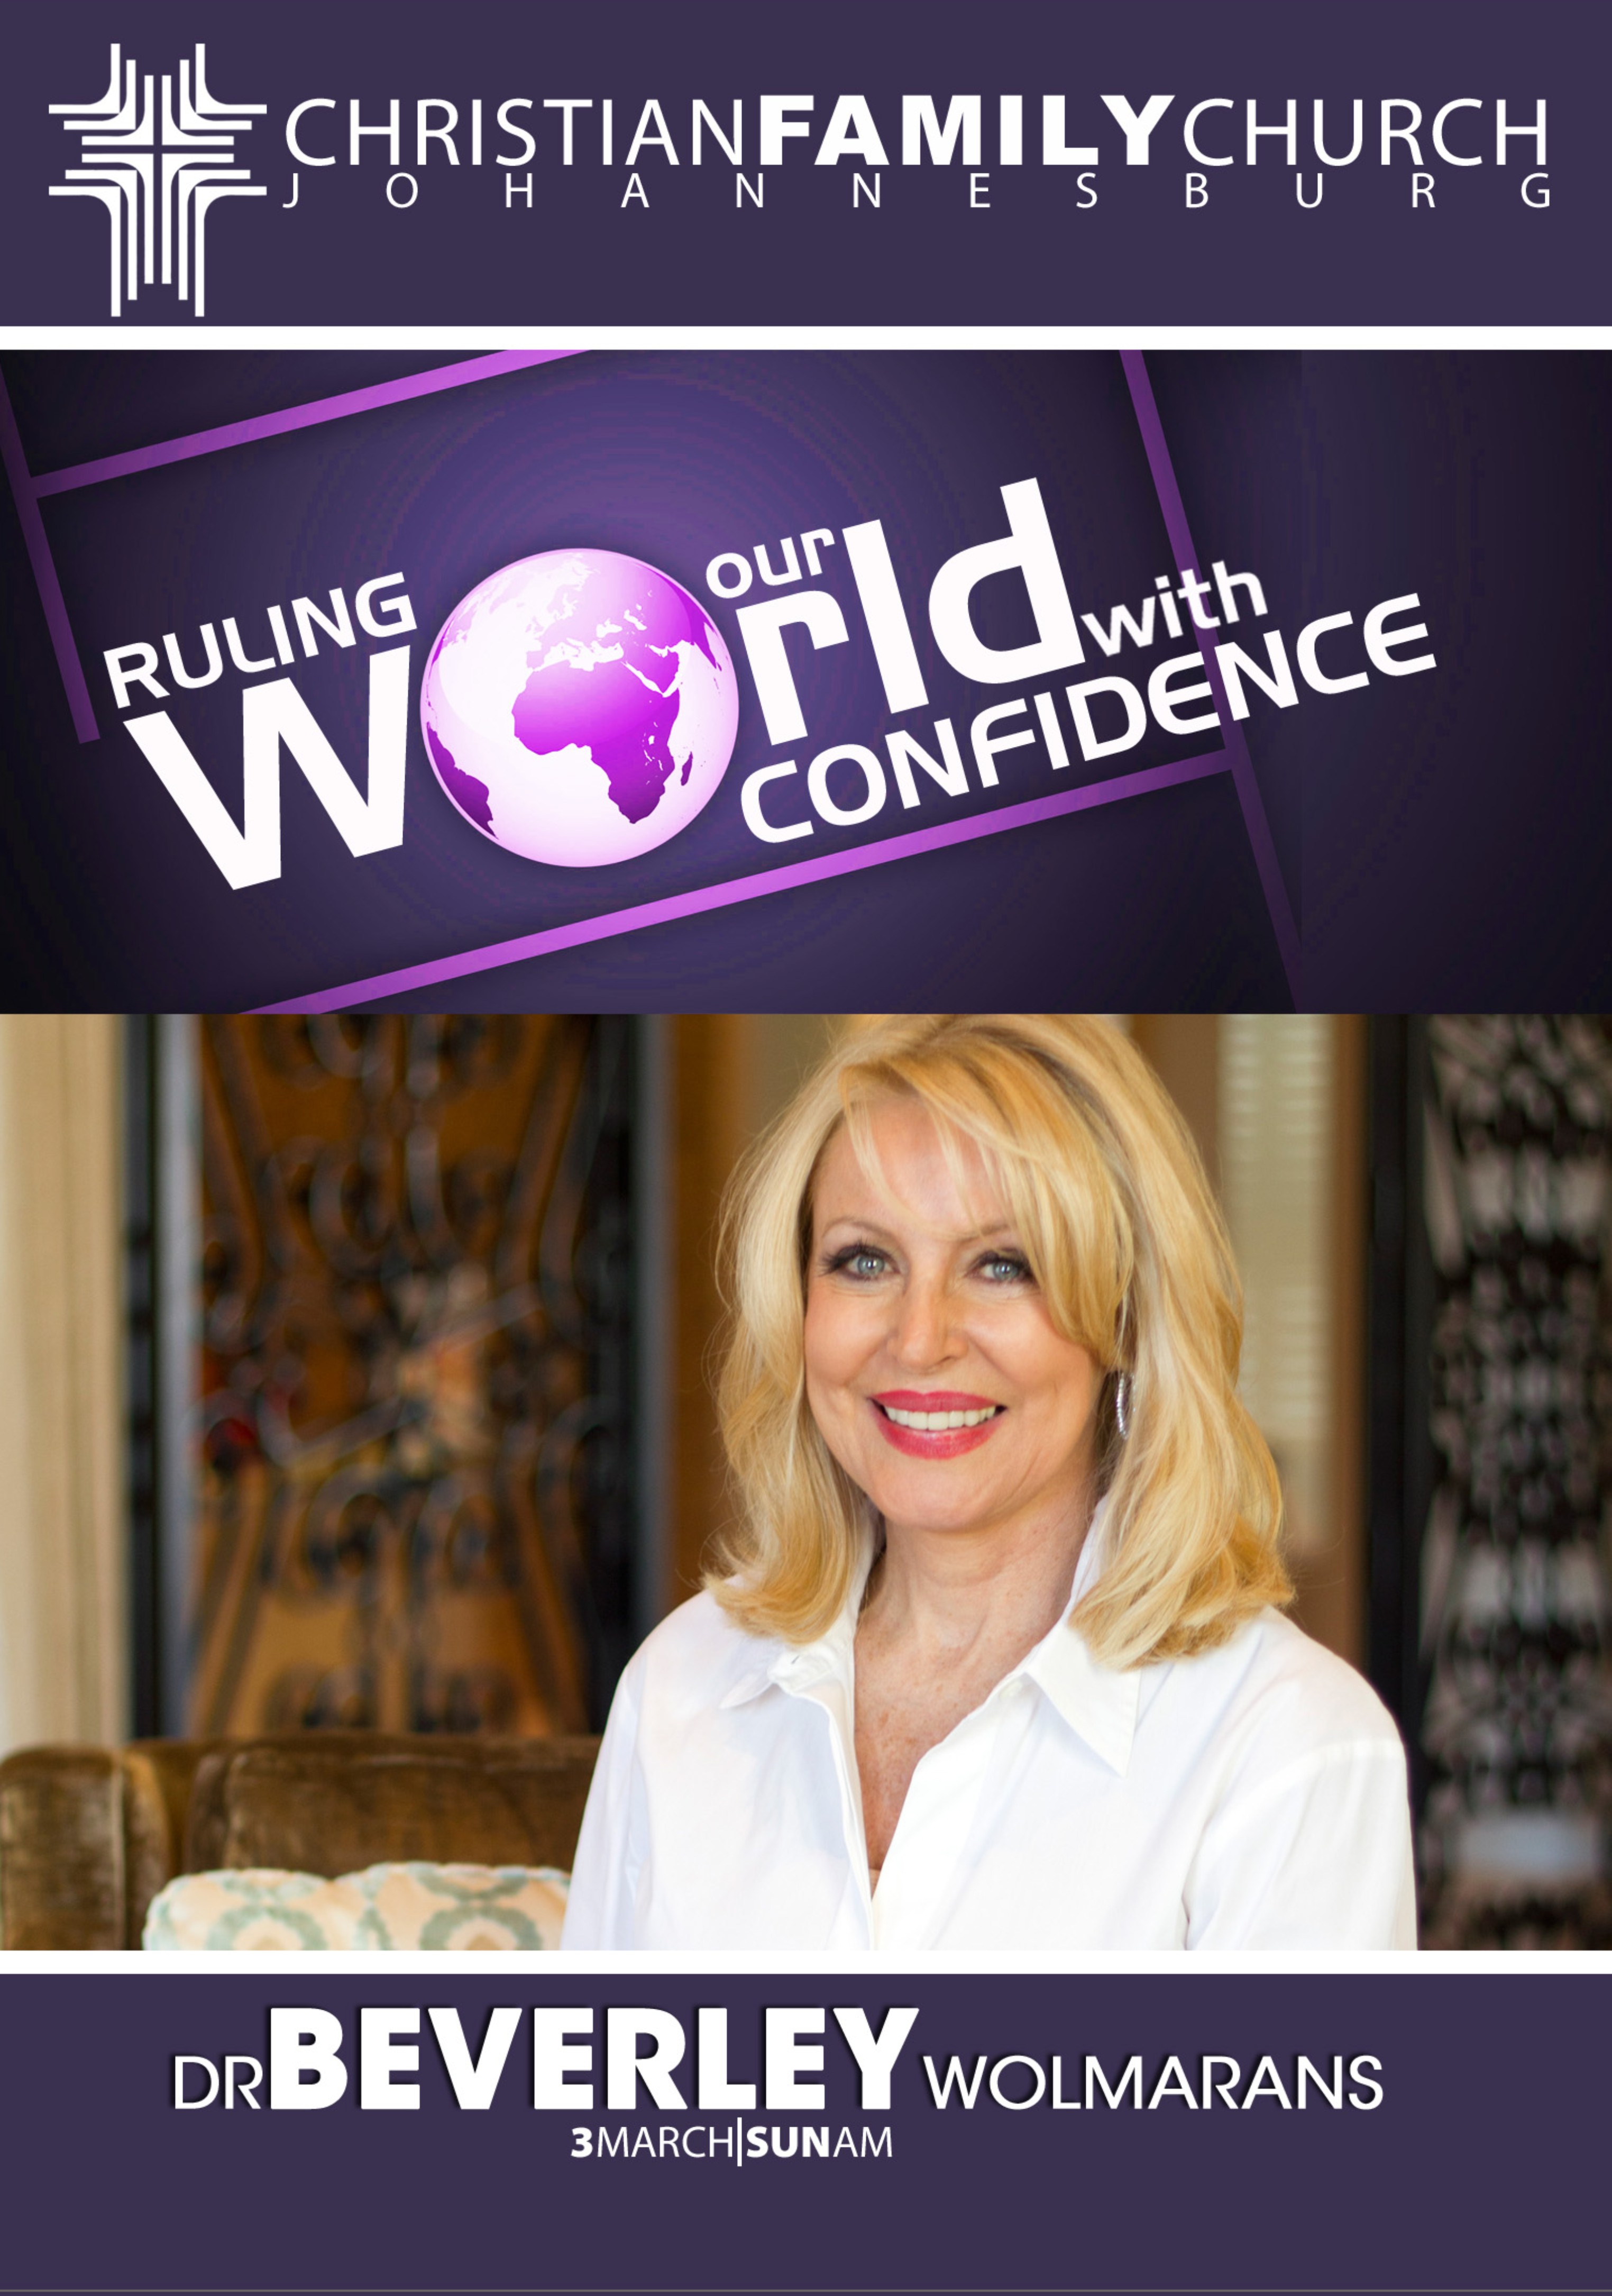 Rulling our world with confidence  1